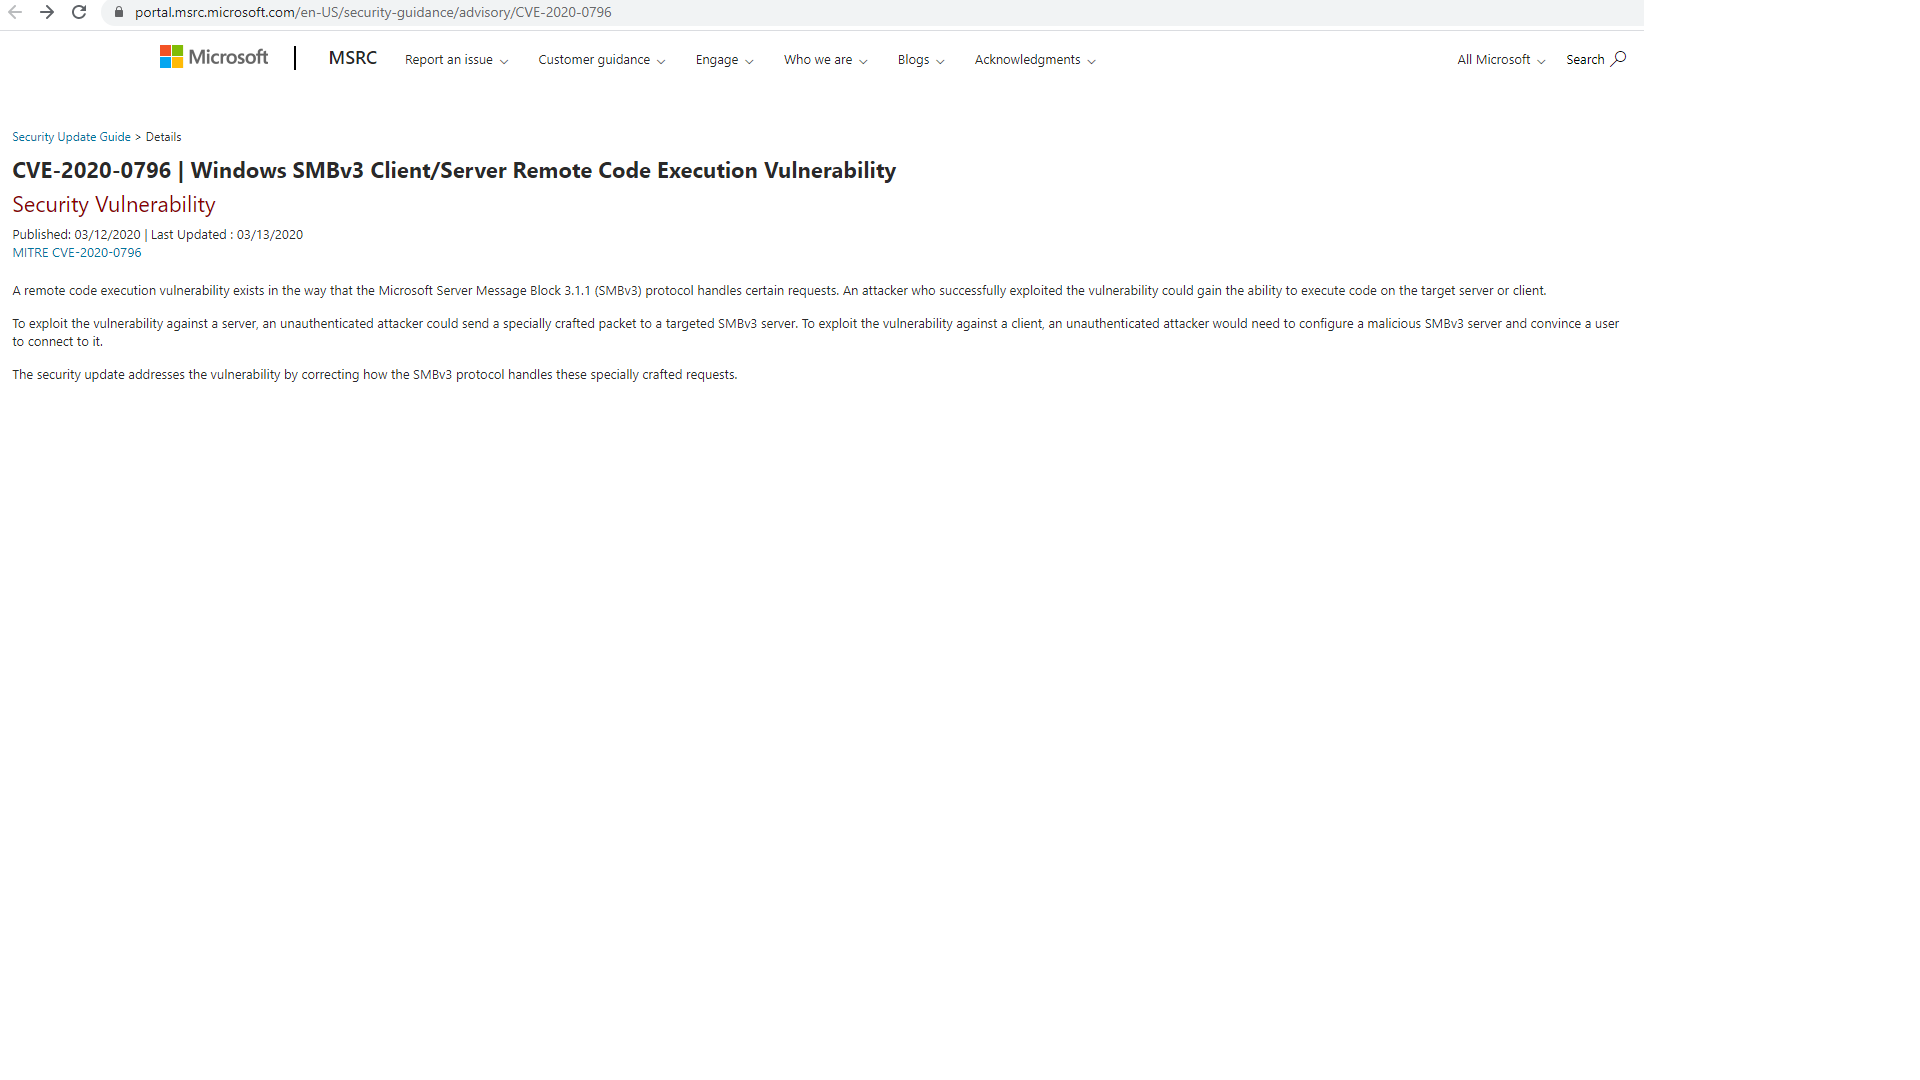 umair-akbar-image36 - Researchers Disclose Undocumented Chinese Malware Used in Recent Attacks